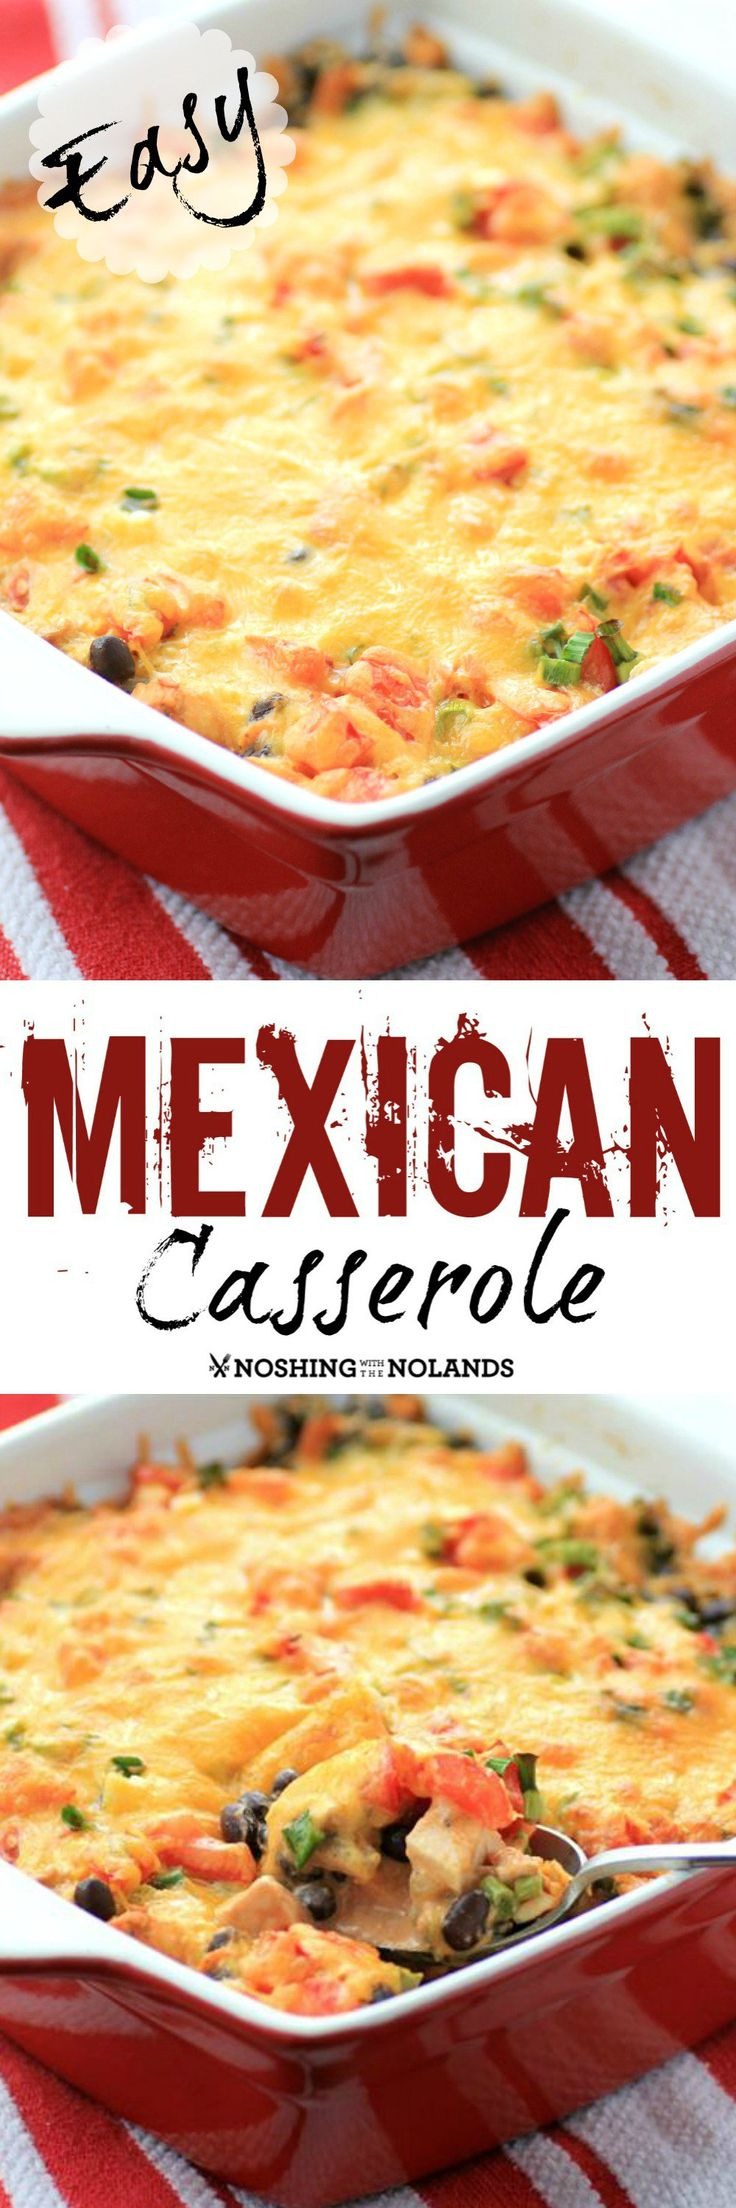 Mexican Casserole, an easy cheesy chicken dish the whole family will love to have again and again | #casserole #mexican | noshingwiththenolands.com